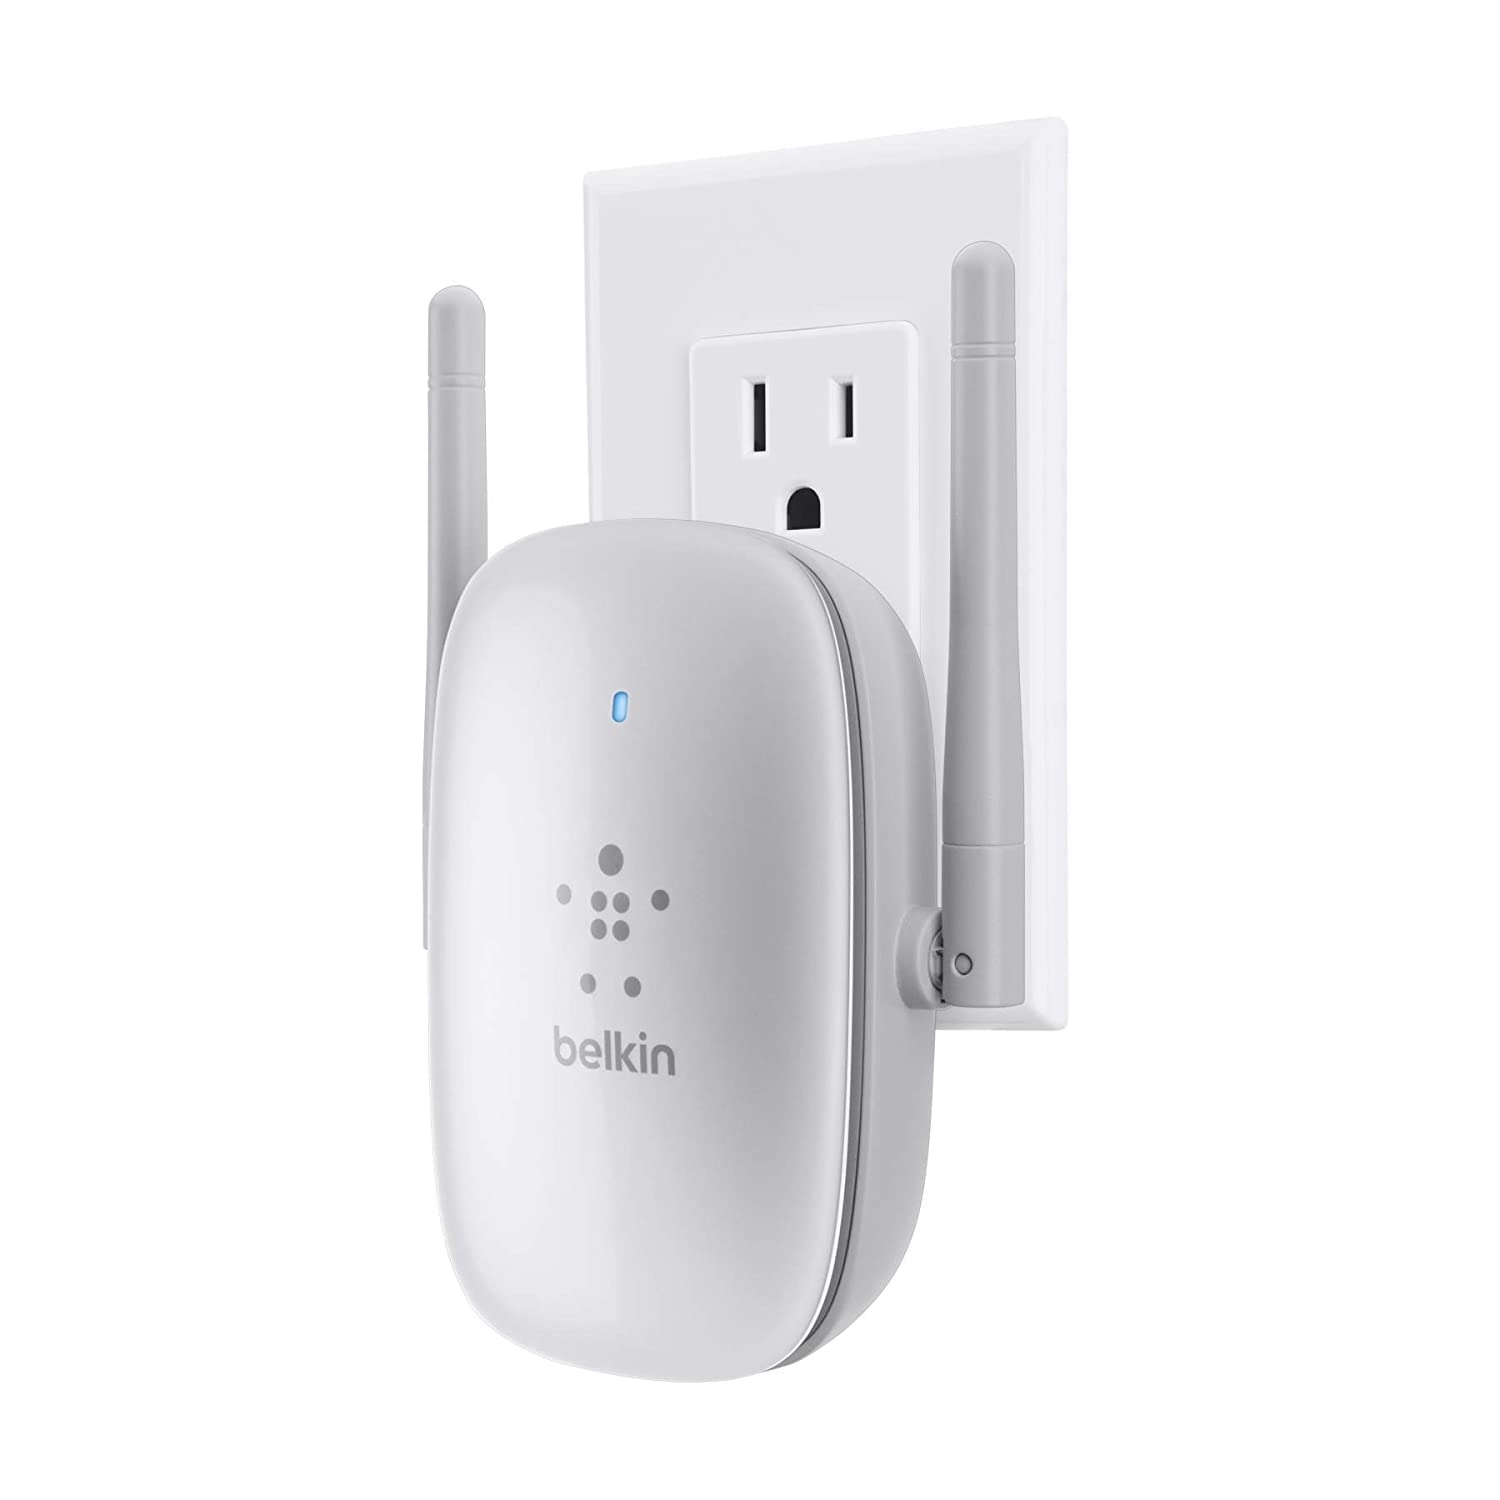 Amazon.com: Belkin N300 Dual Band Wireless N Range Extender: Computers &  Accessories